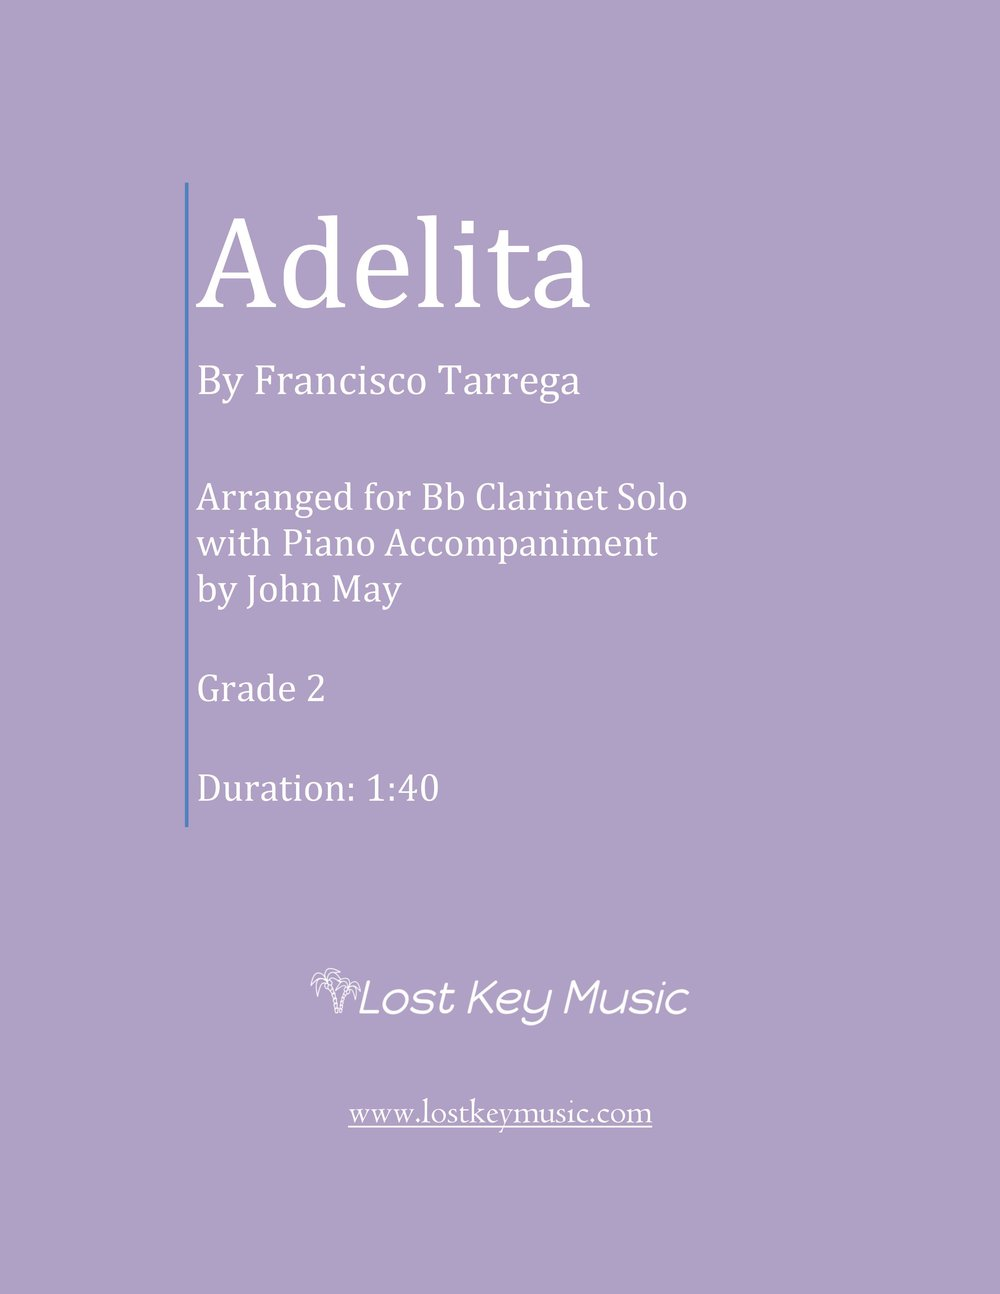 Adelita-Bb Clarinet Solo with Piano Accompaniment-Cover Photo.jpg